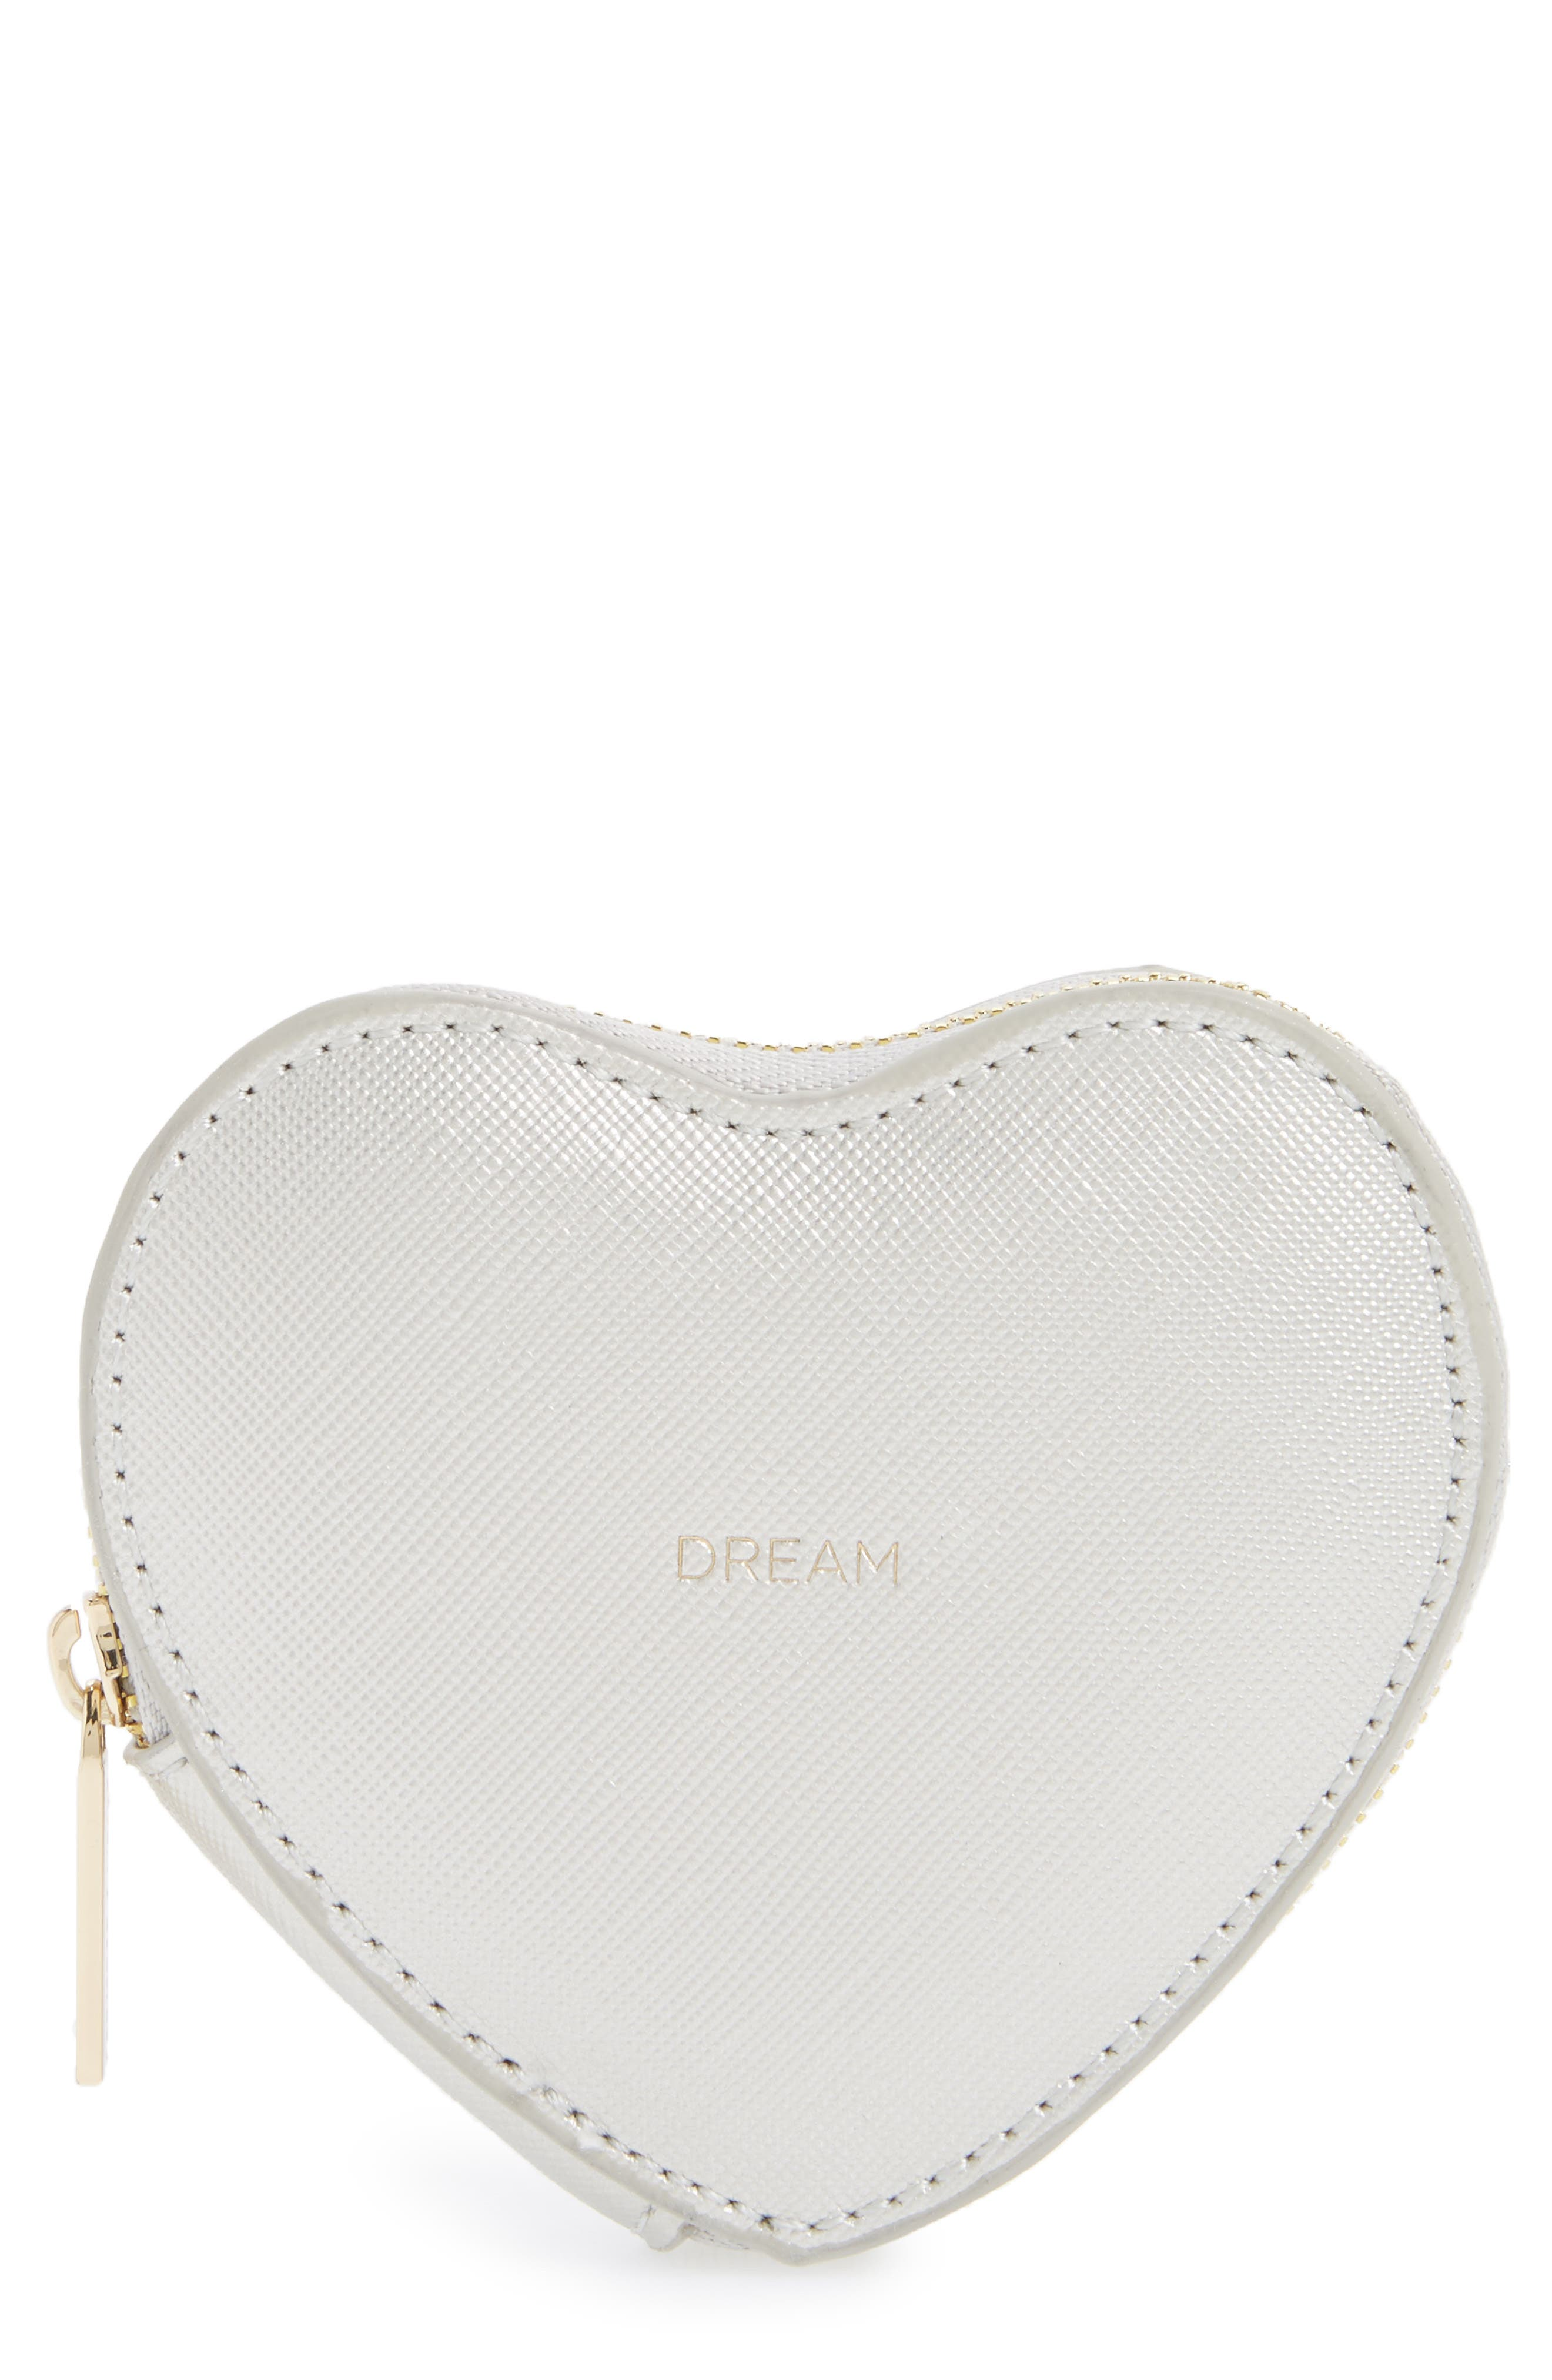 Heart Dream Faux Leather Coin Purse,                         Main,                         color,